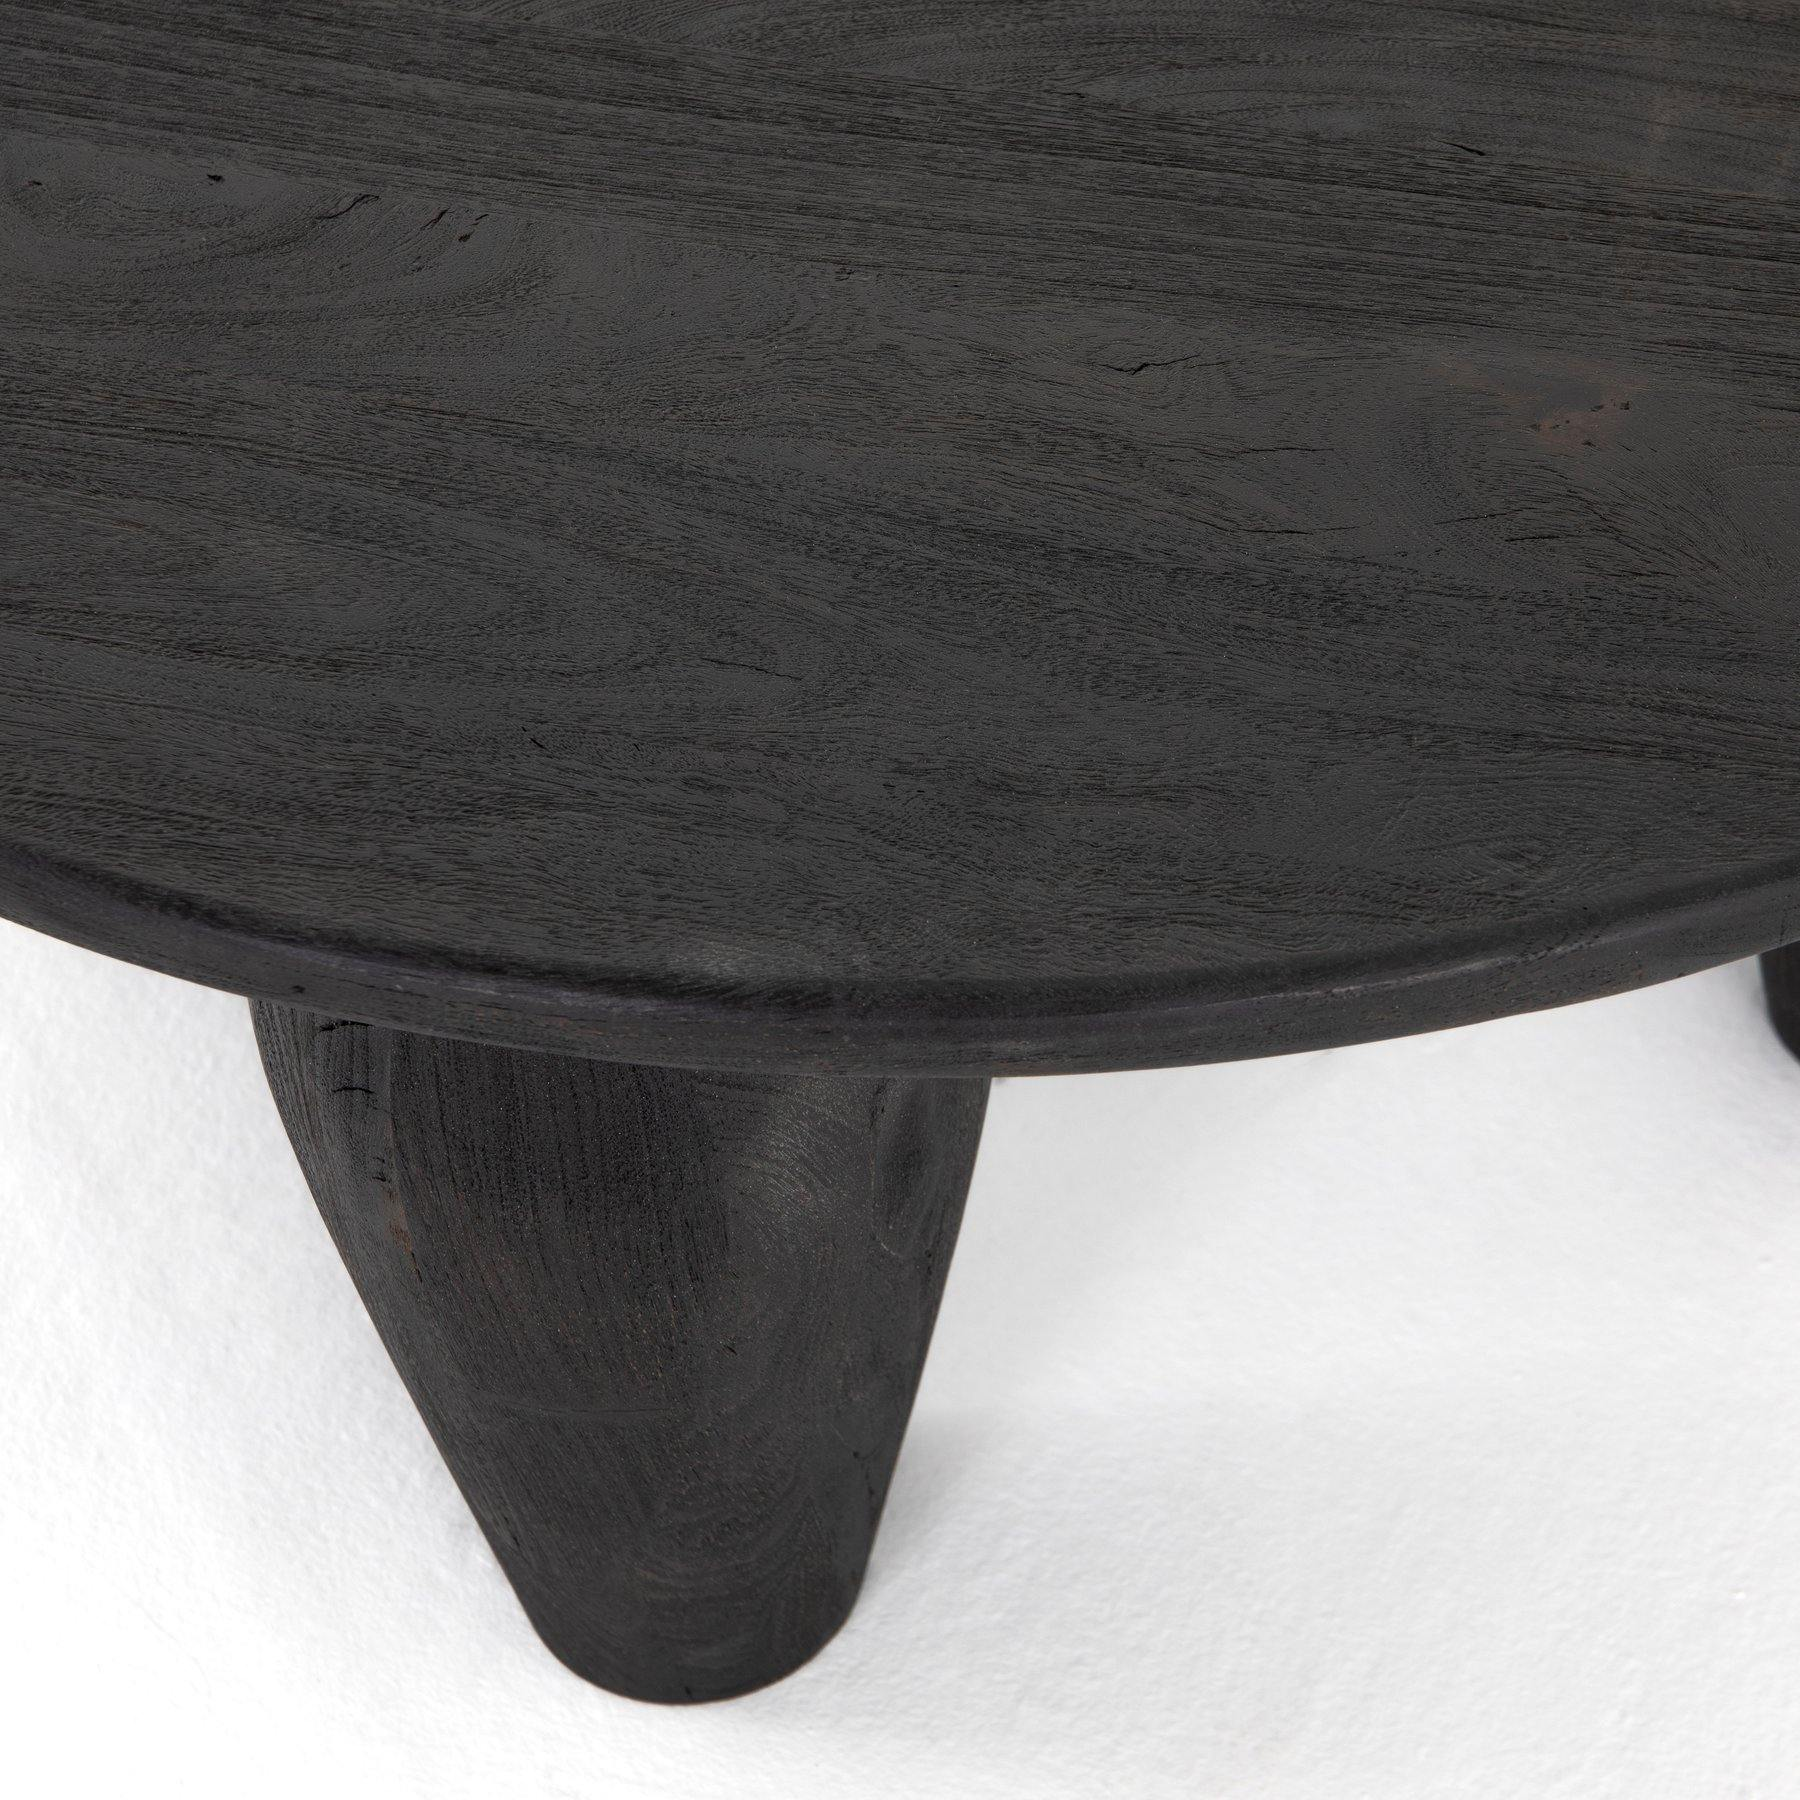 MARICOPA COFFEE TABLE - Reimagine Designs